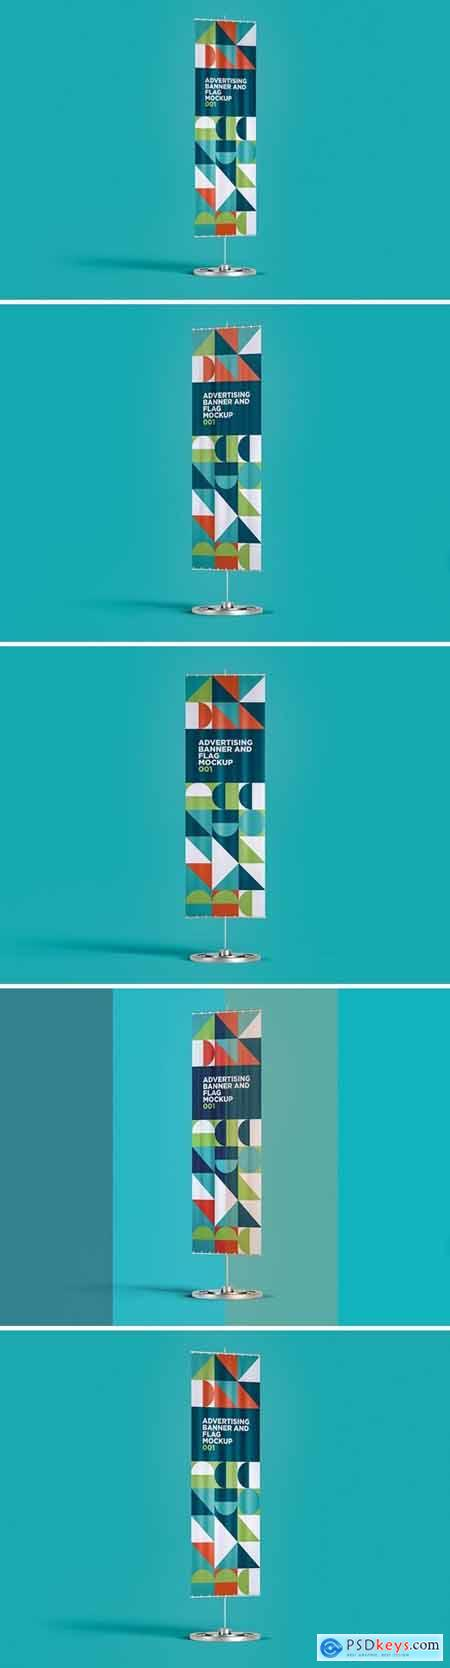 Advertising Banner And Flag Mockup 001